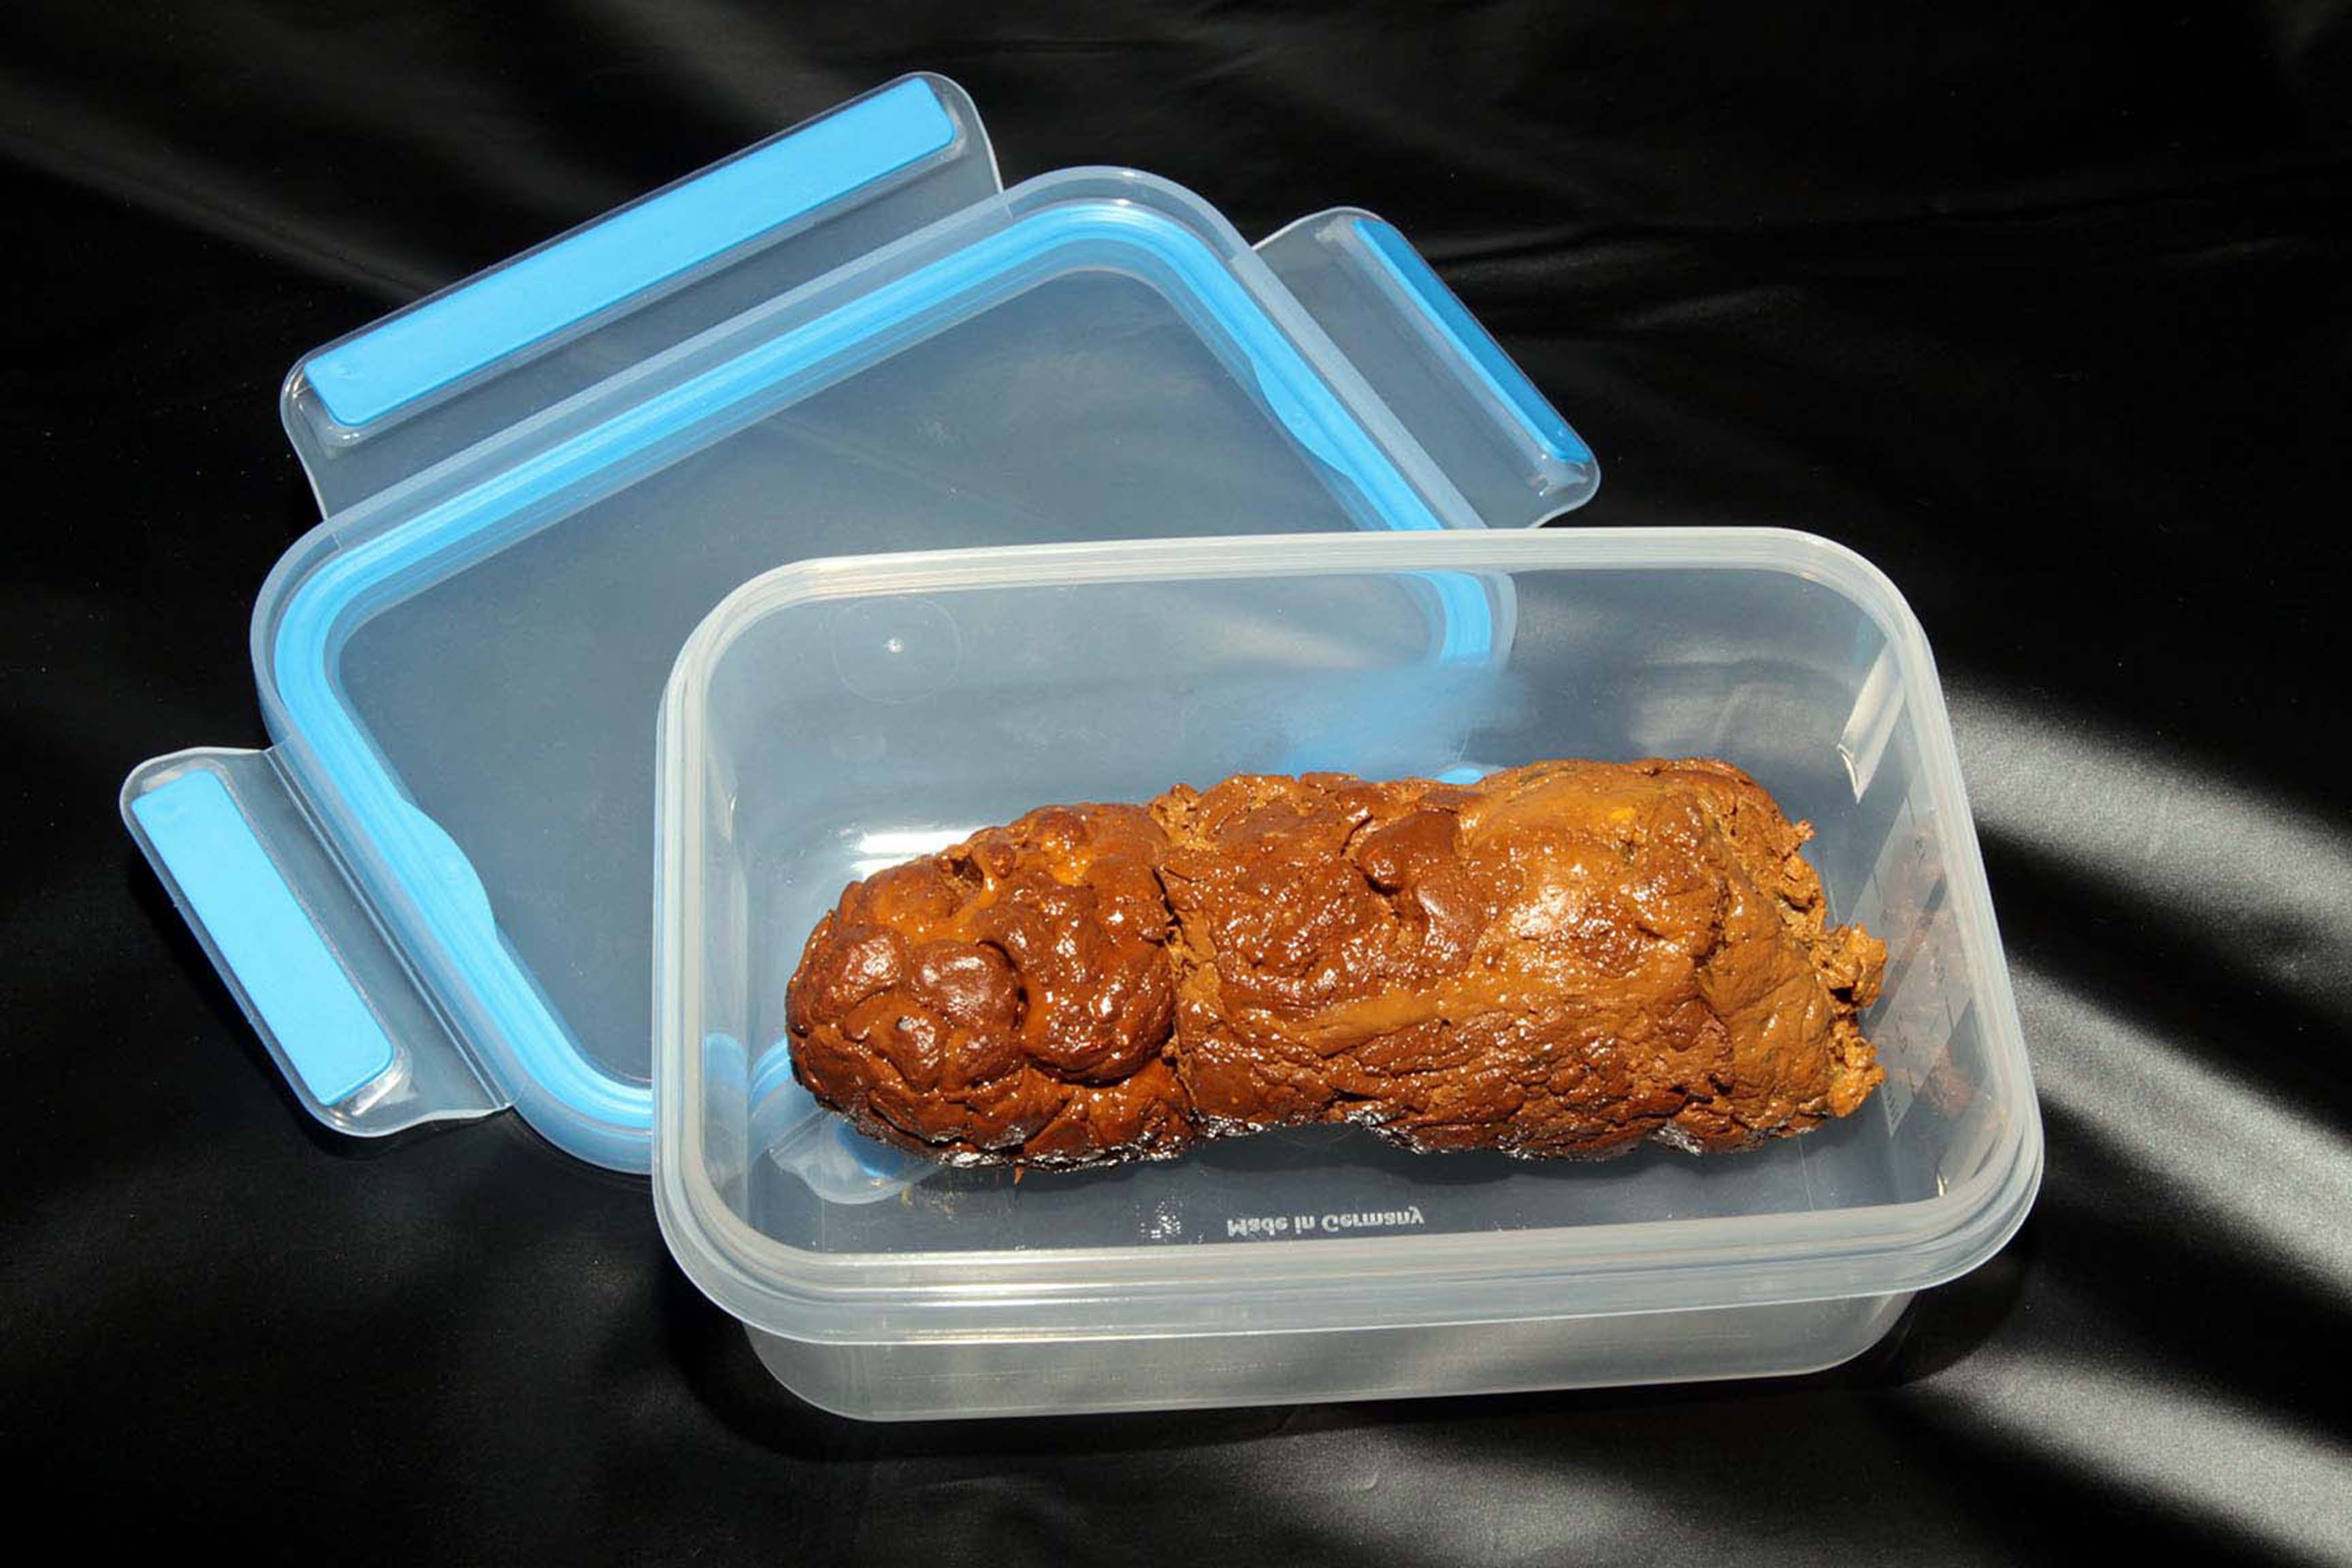 HornyKinkyBoy's Turd In A Box